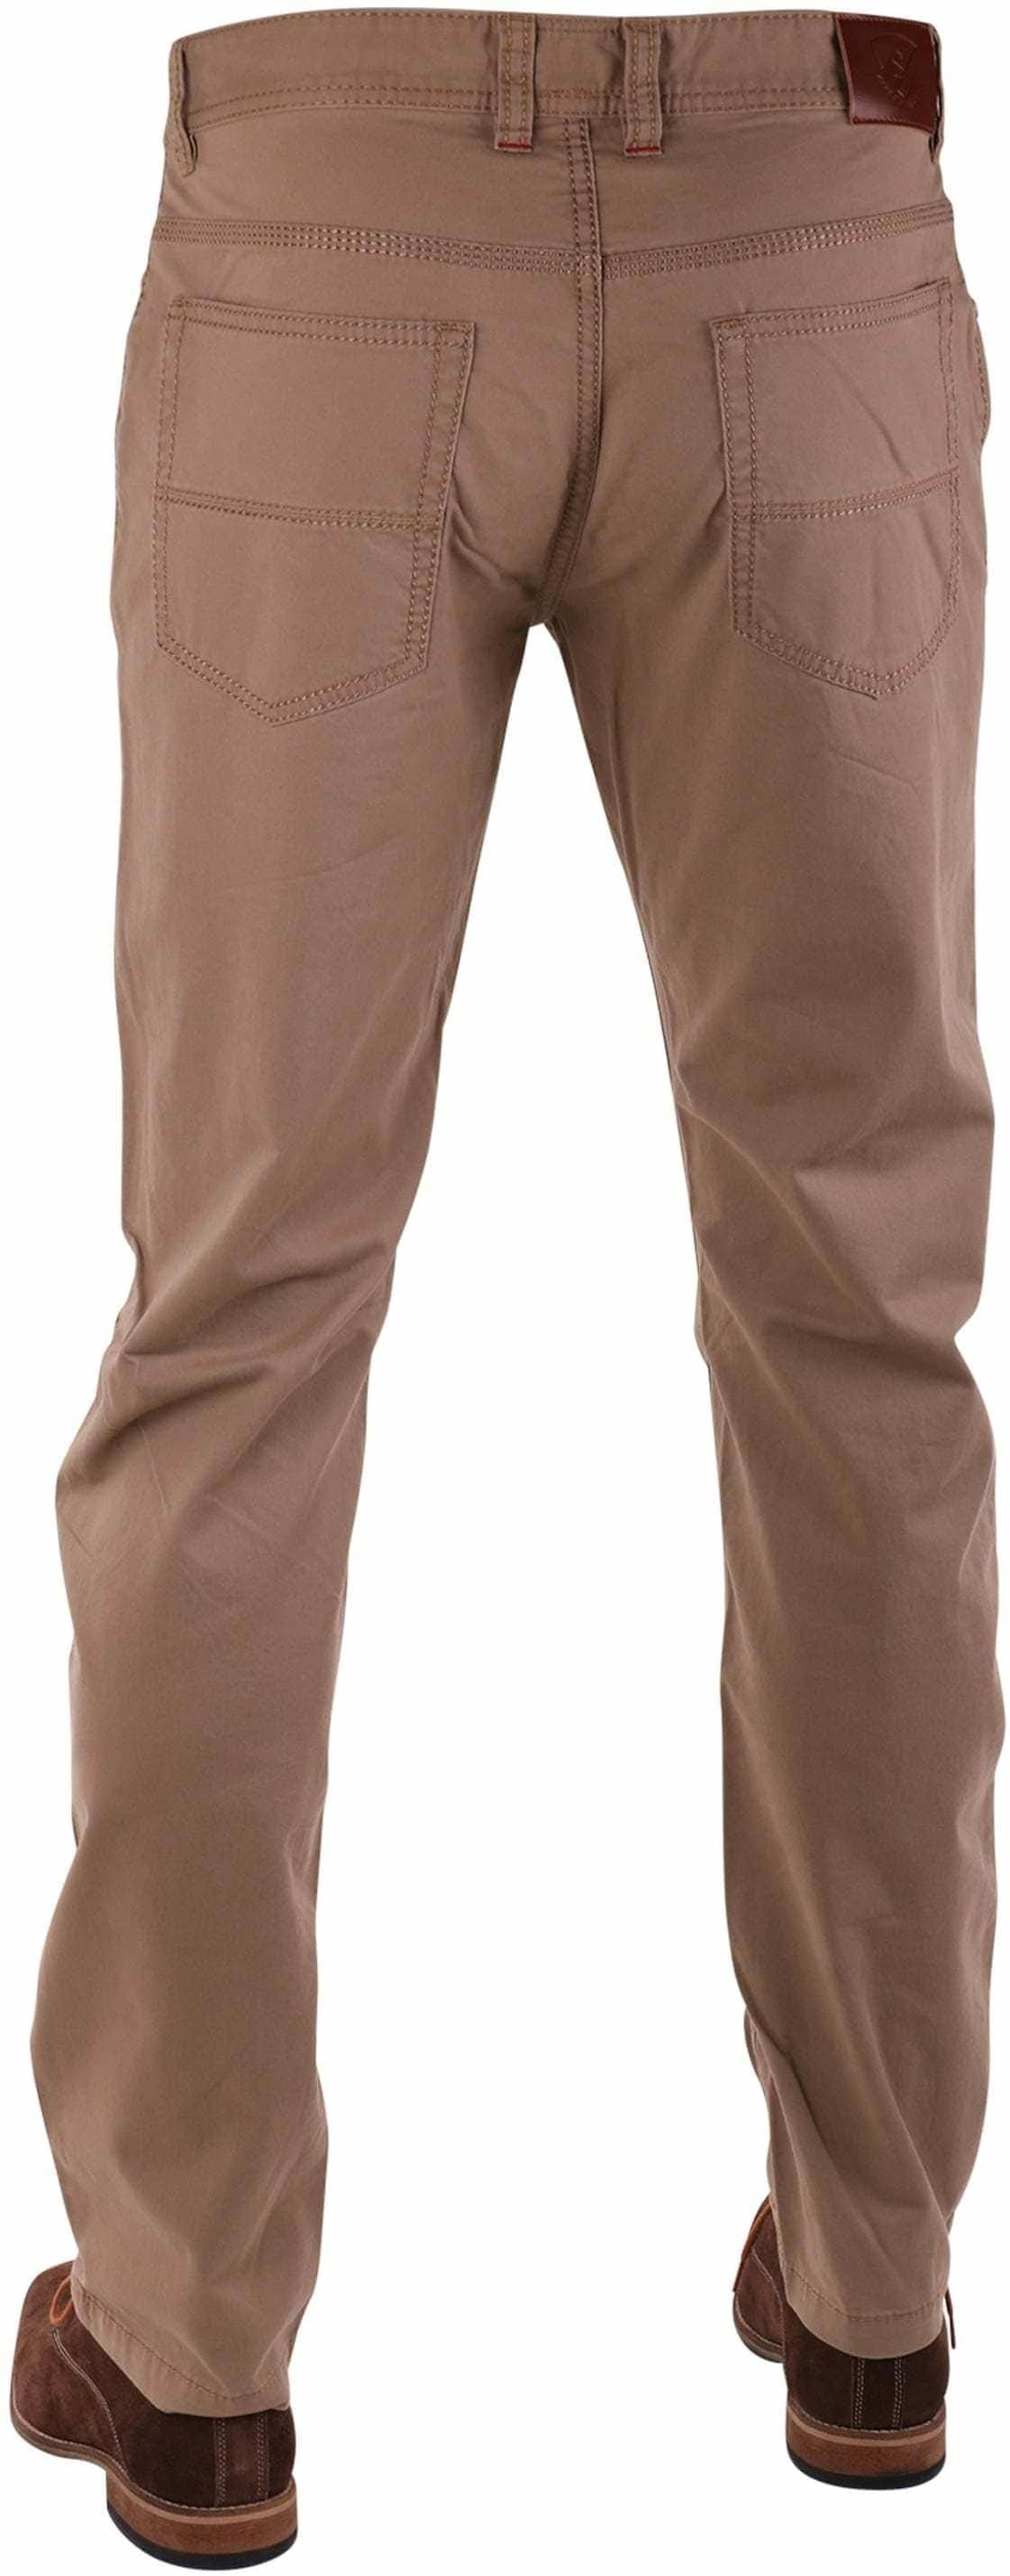 Suitable Broek Khaki foto 1